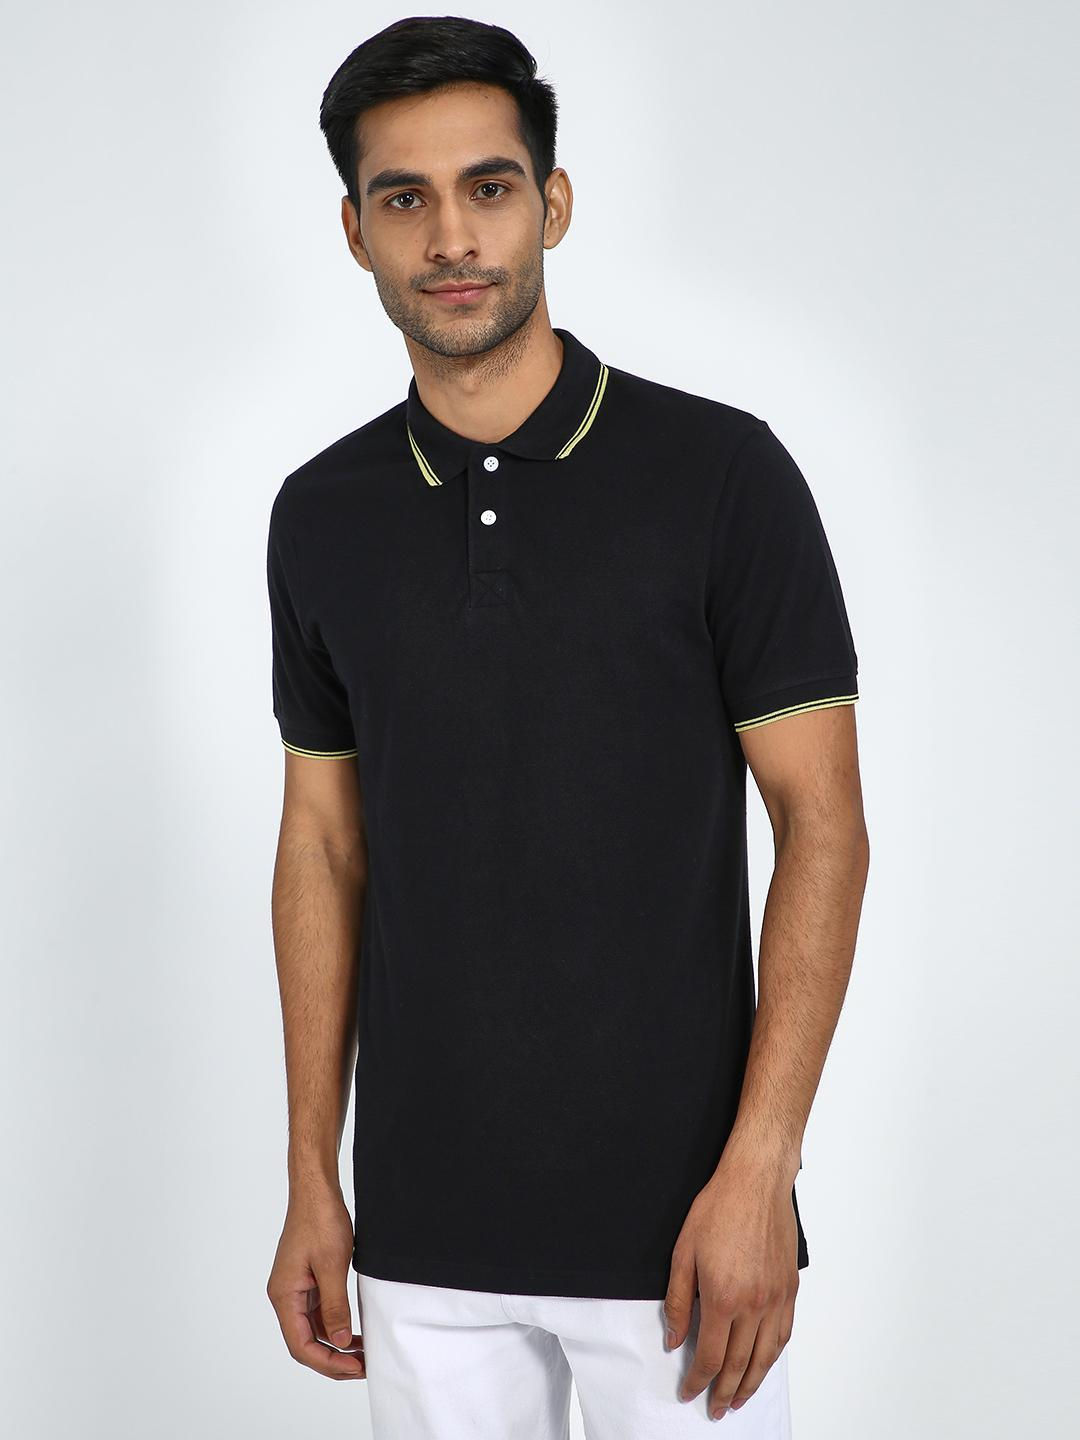 Blue Saint Black Tipped Collar Pique Polo Shirt 1